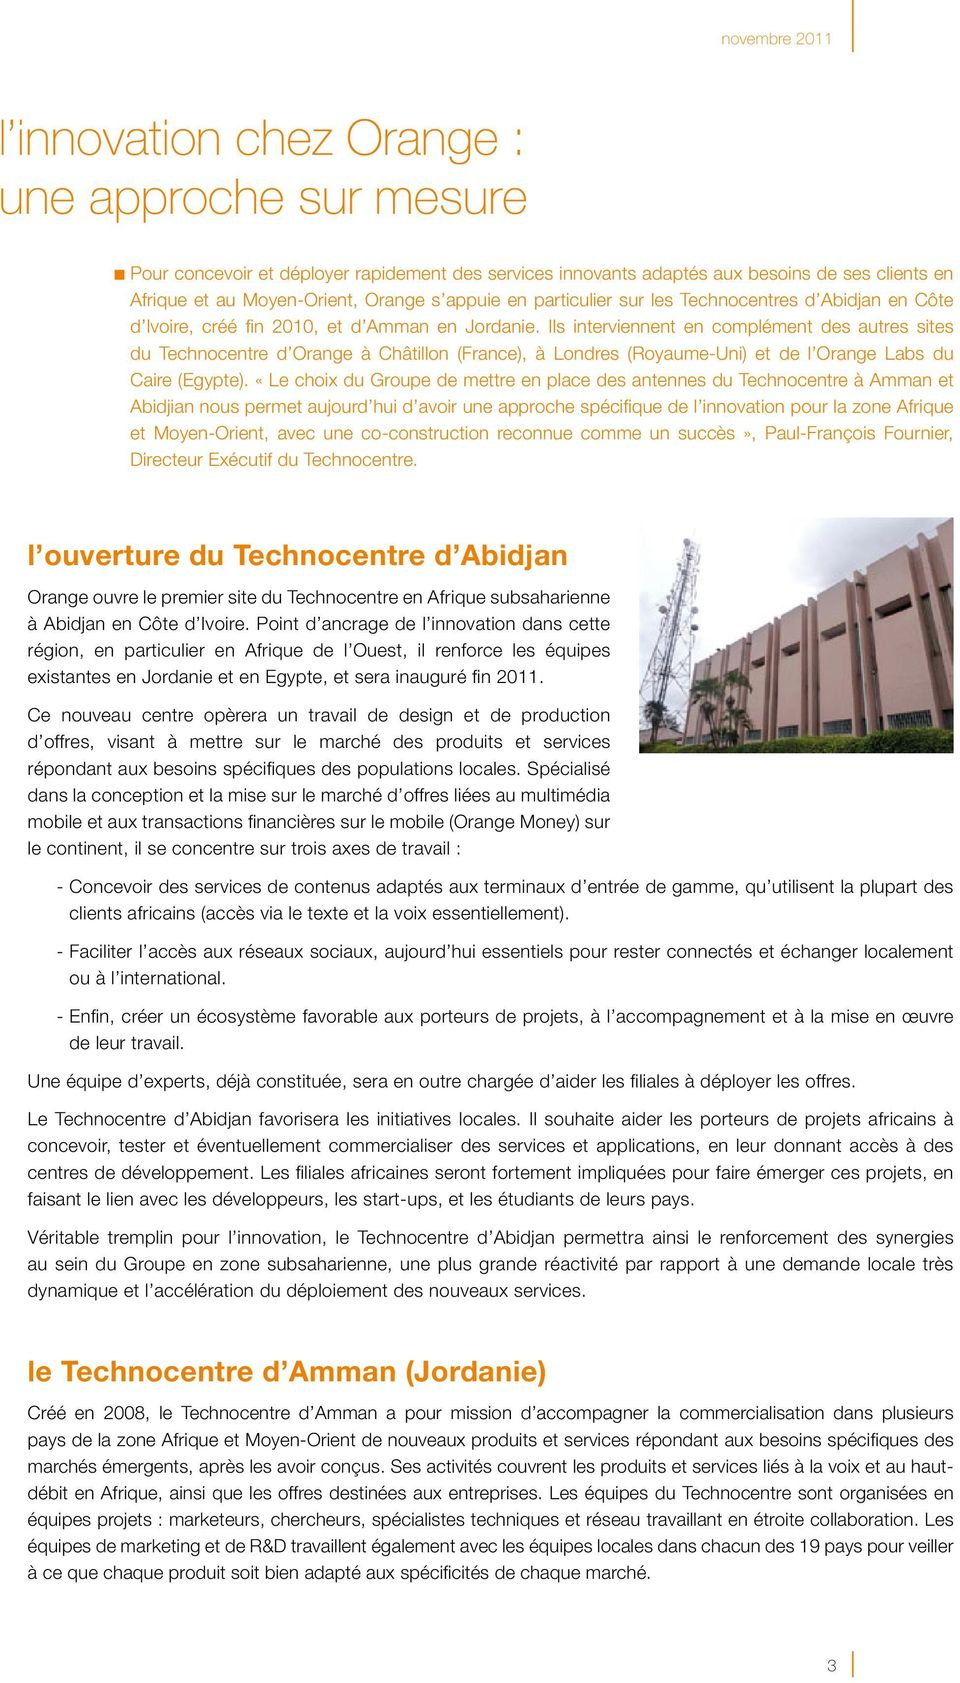 Ils interviennent en complément des autres sites du Technocentre d Orange à Châtillon (France), à Londres (Royaume-Uni) et de l Orange Labs du Caire (Egypte).